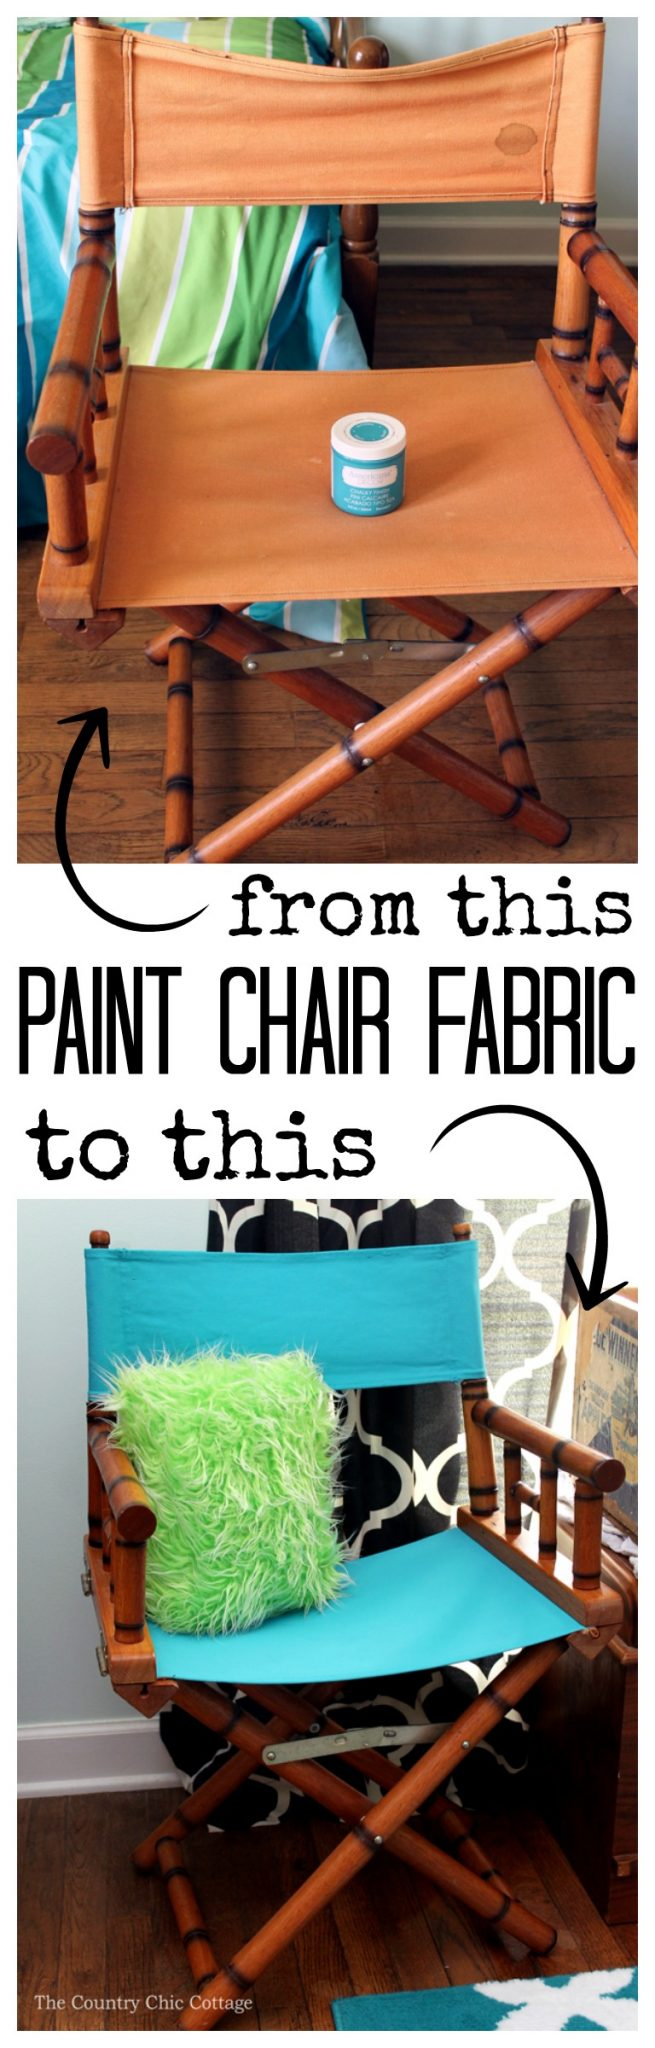 How To Paint Chair Fabric   Grab Your Paint And Change The Appearance Of  Upholstery!